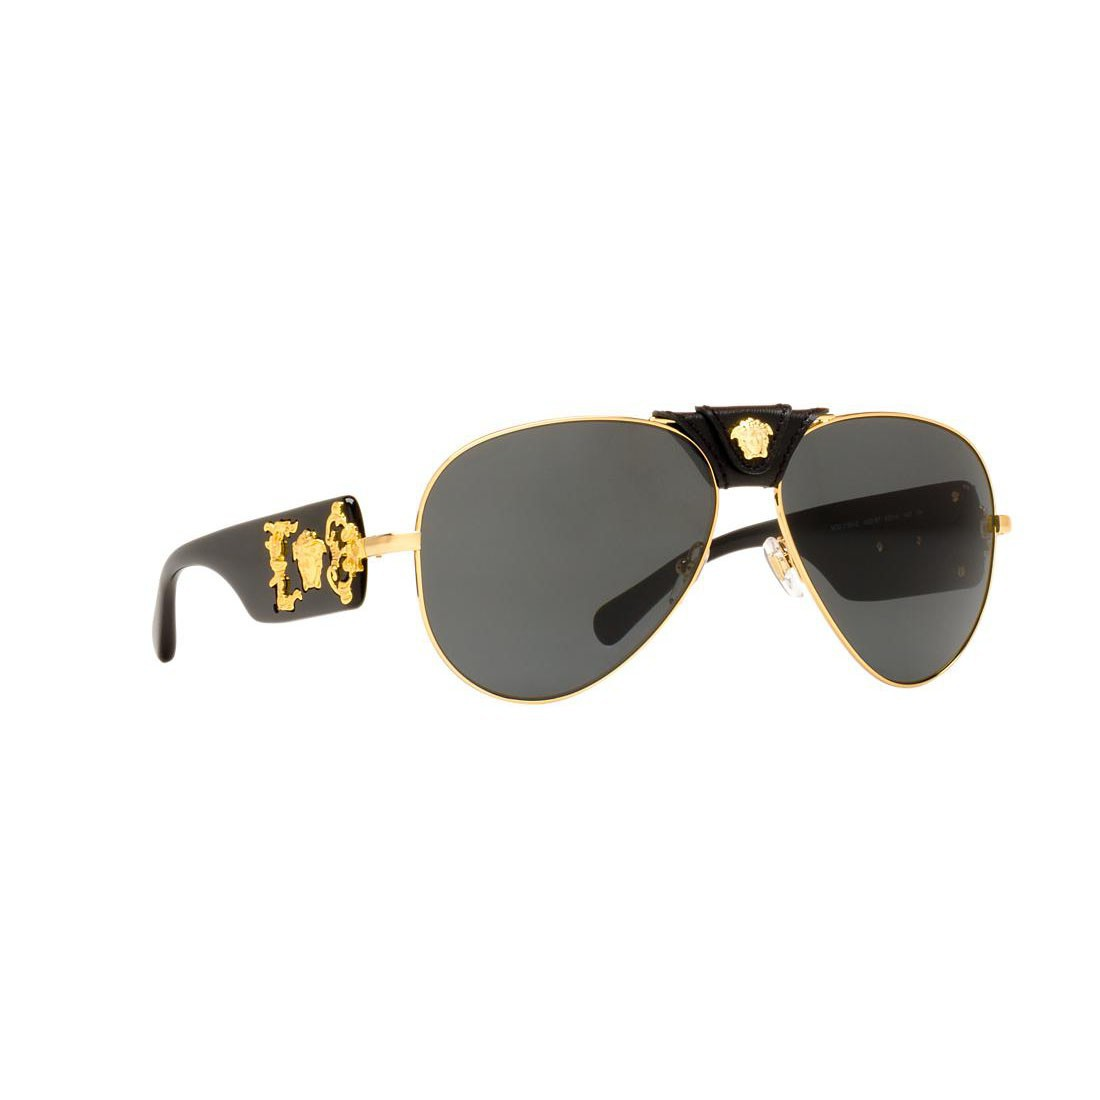 Versace Men's Sunglasses VE2150Q 100287 62mm